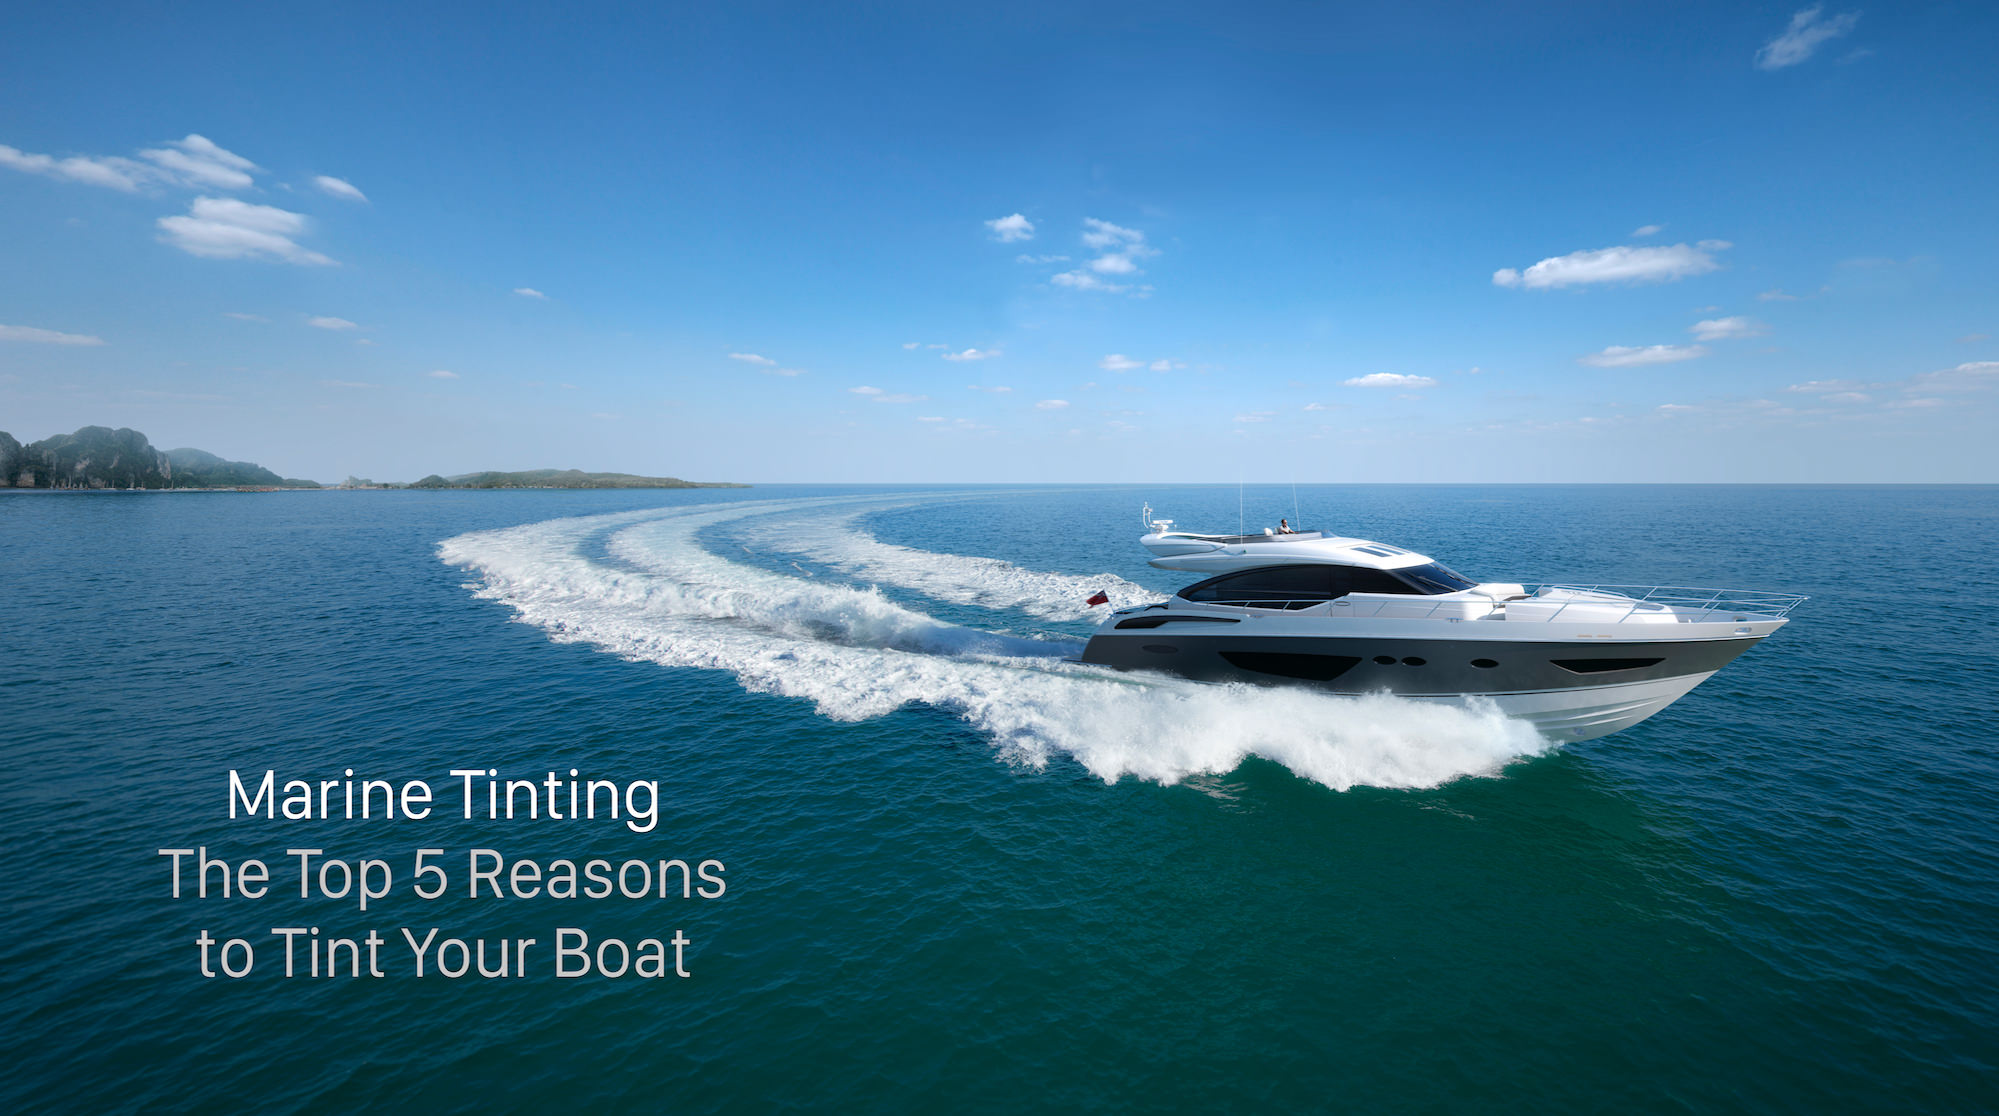 Platinum Top 5 reasons to tint your boat